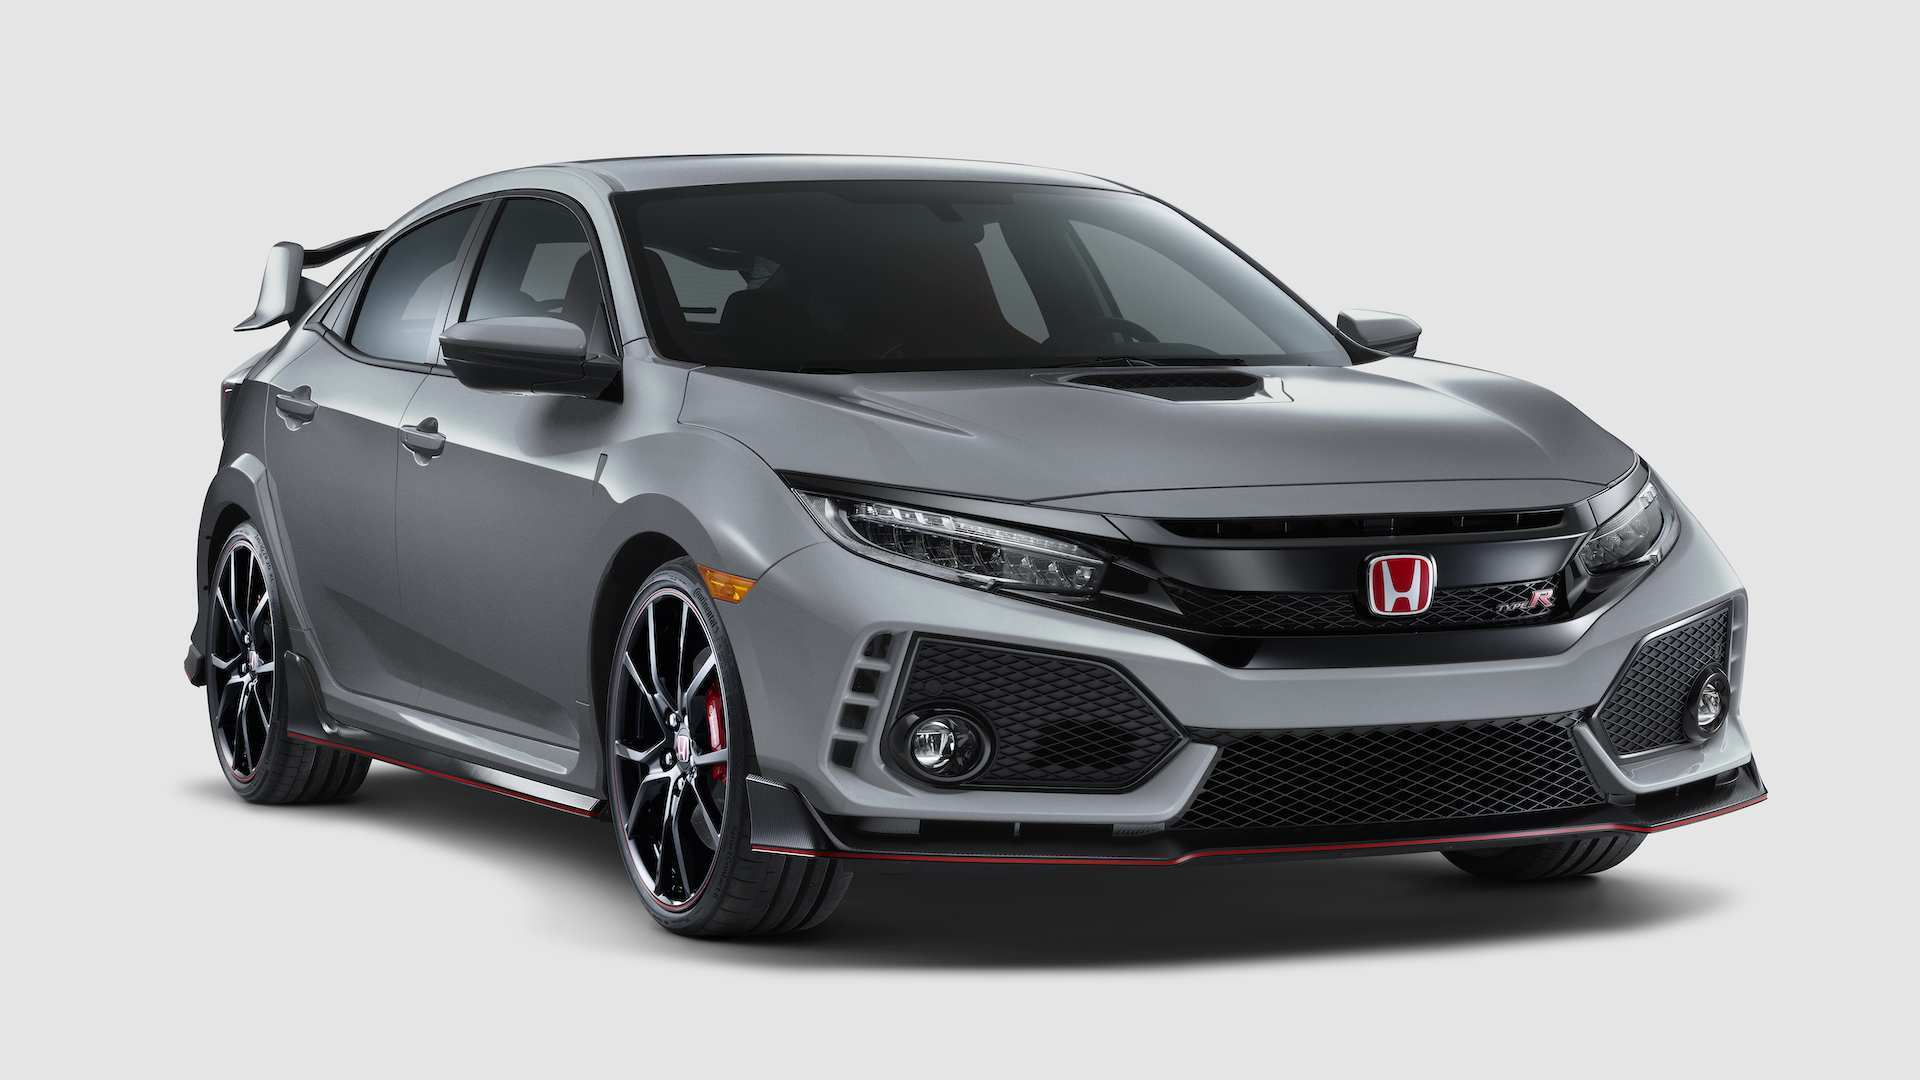 57 Best 2019 Honda Civic Overview